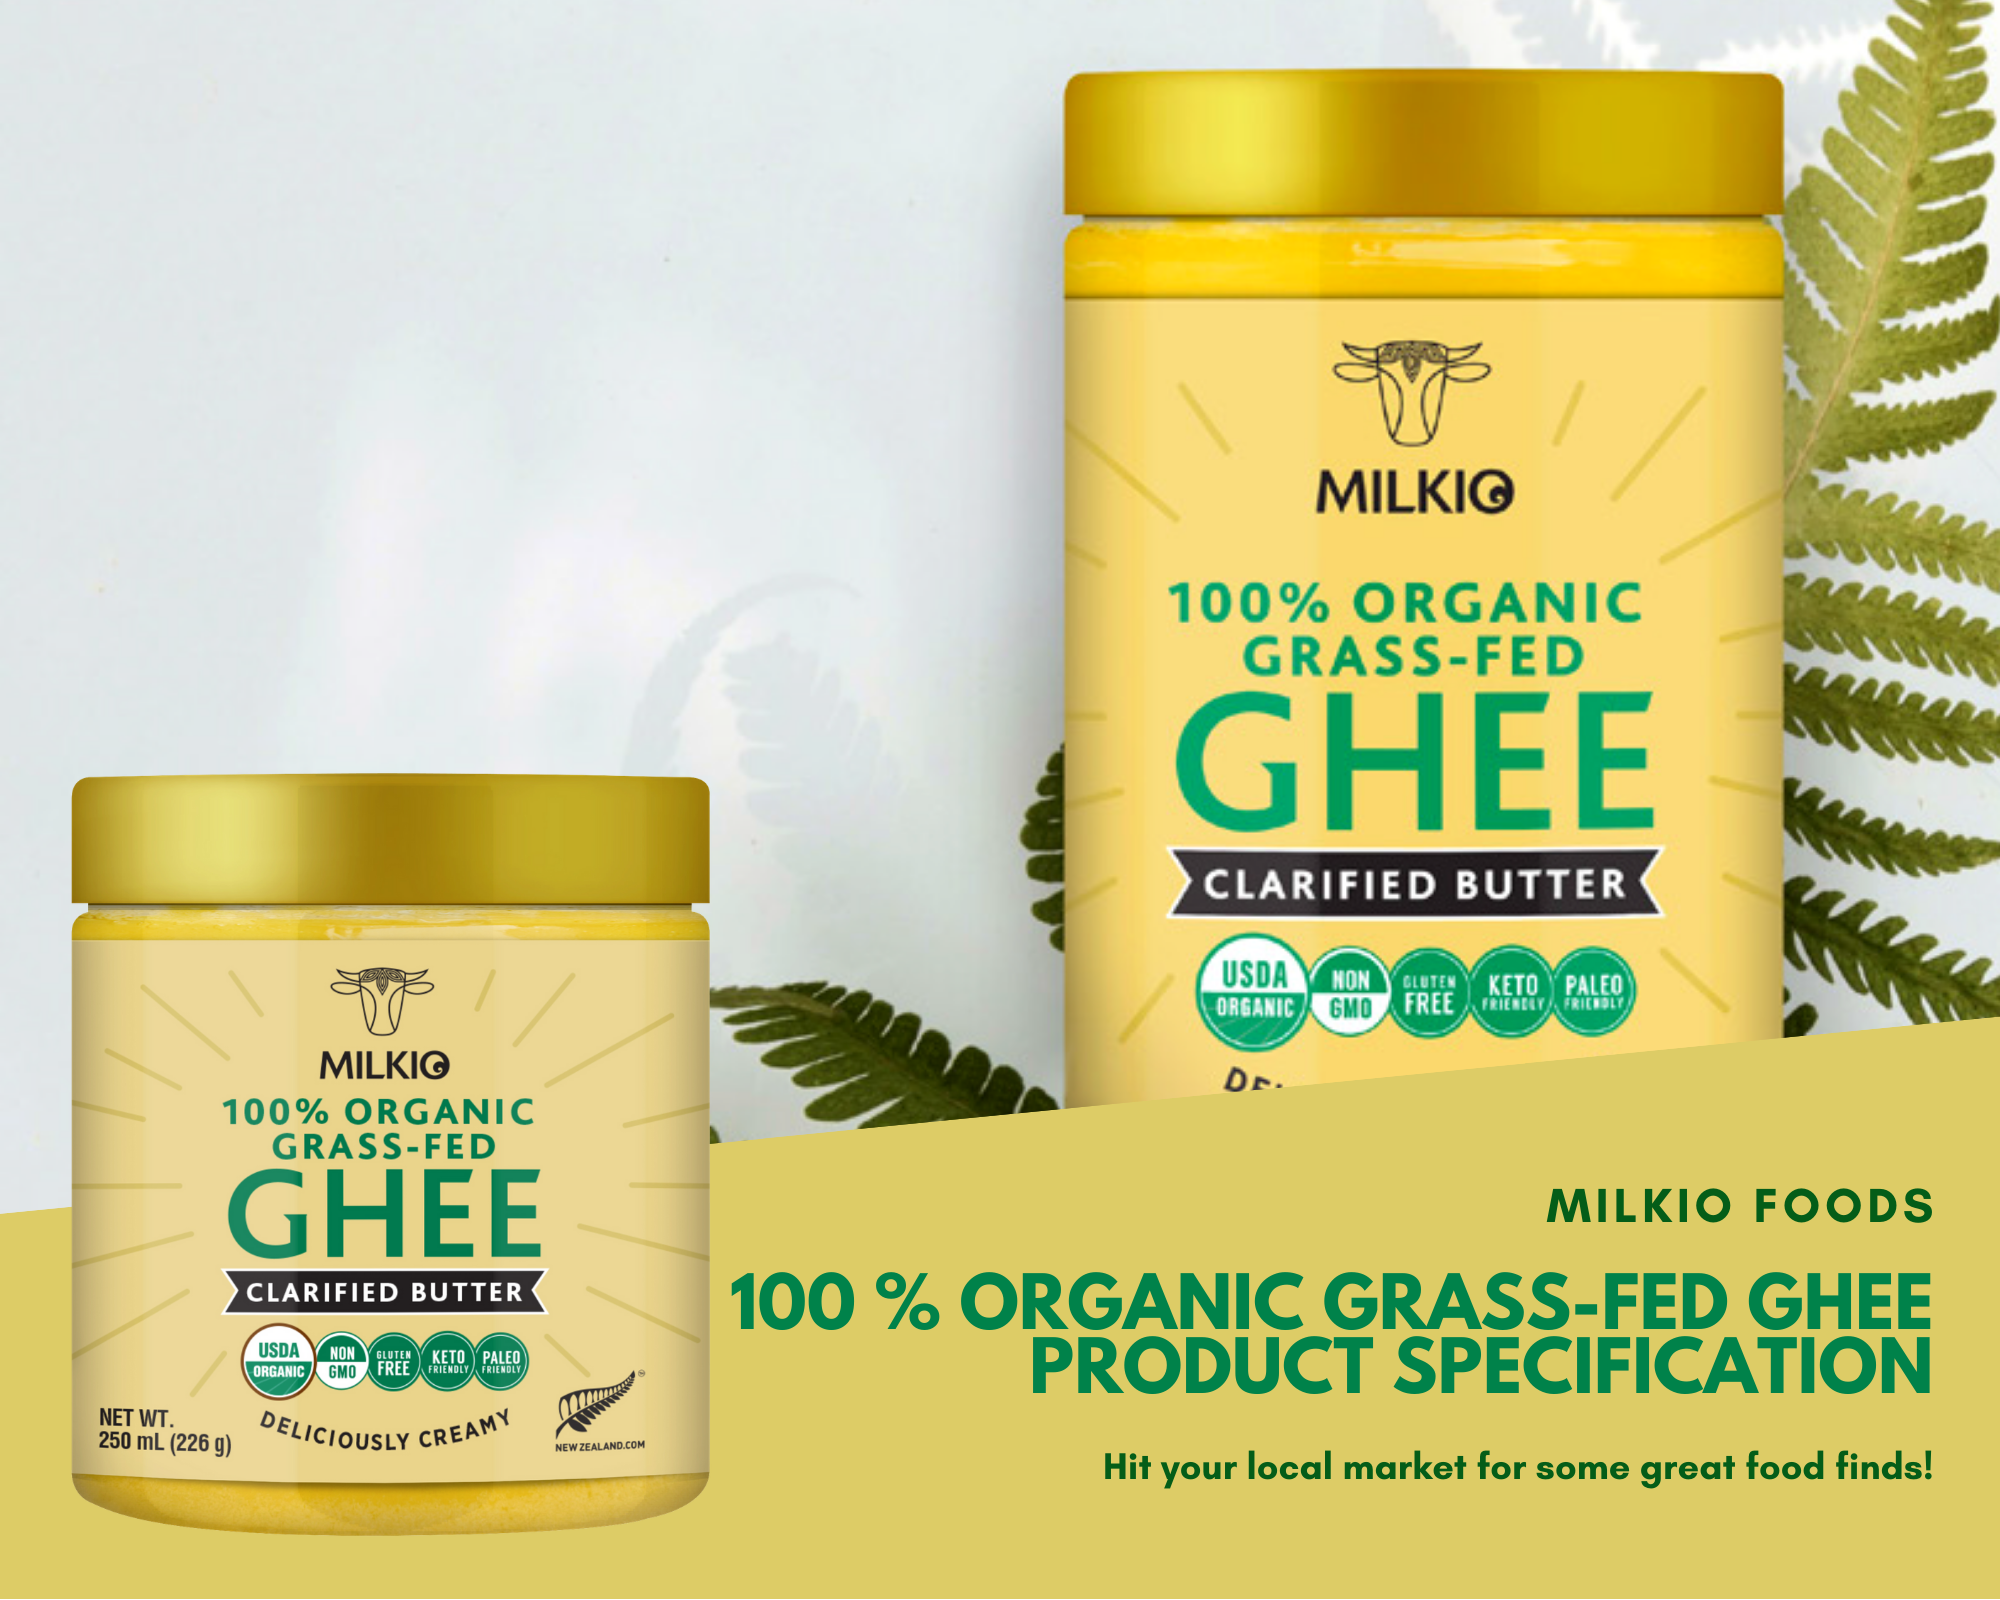 100% Organic   grass fed ghee product specification